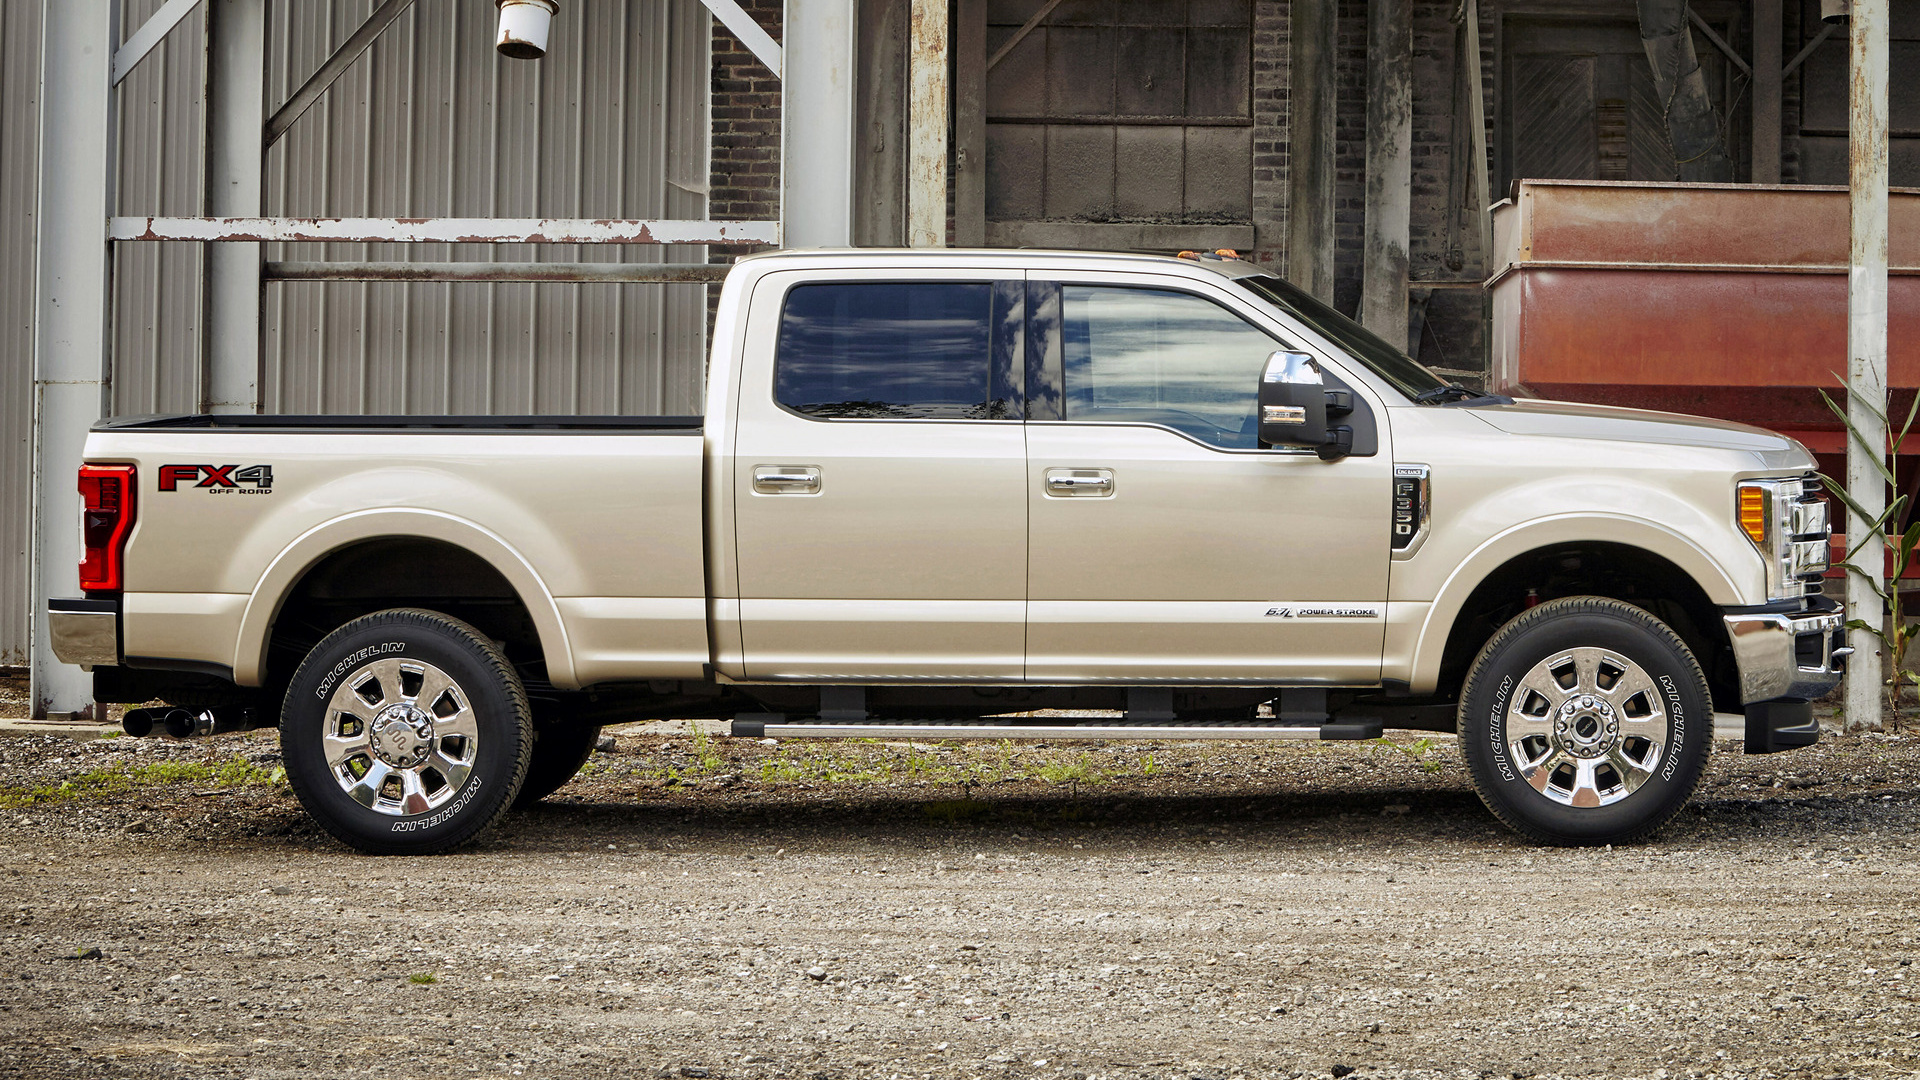 Ford F-350 King Ranch FX4 Crew Cab (2017) Wallpapers and HD Images - Car Pixel